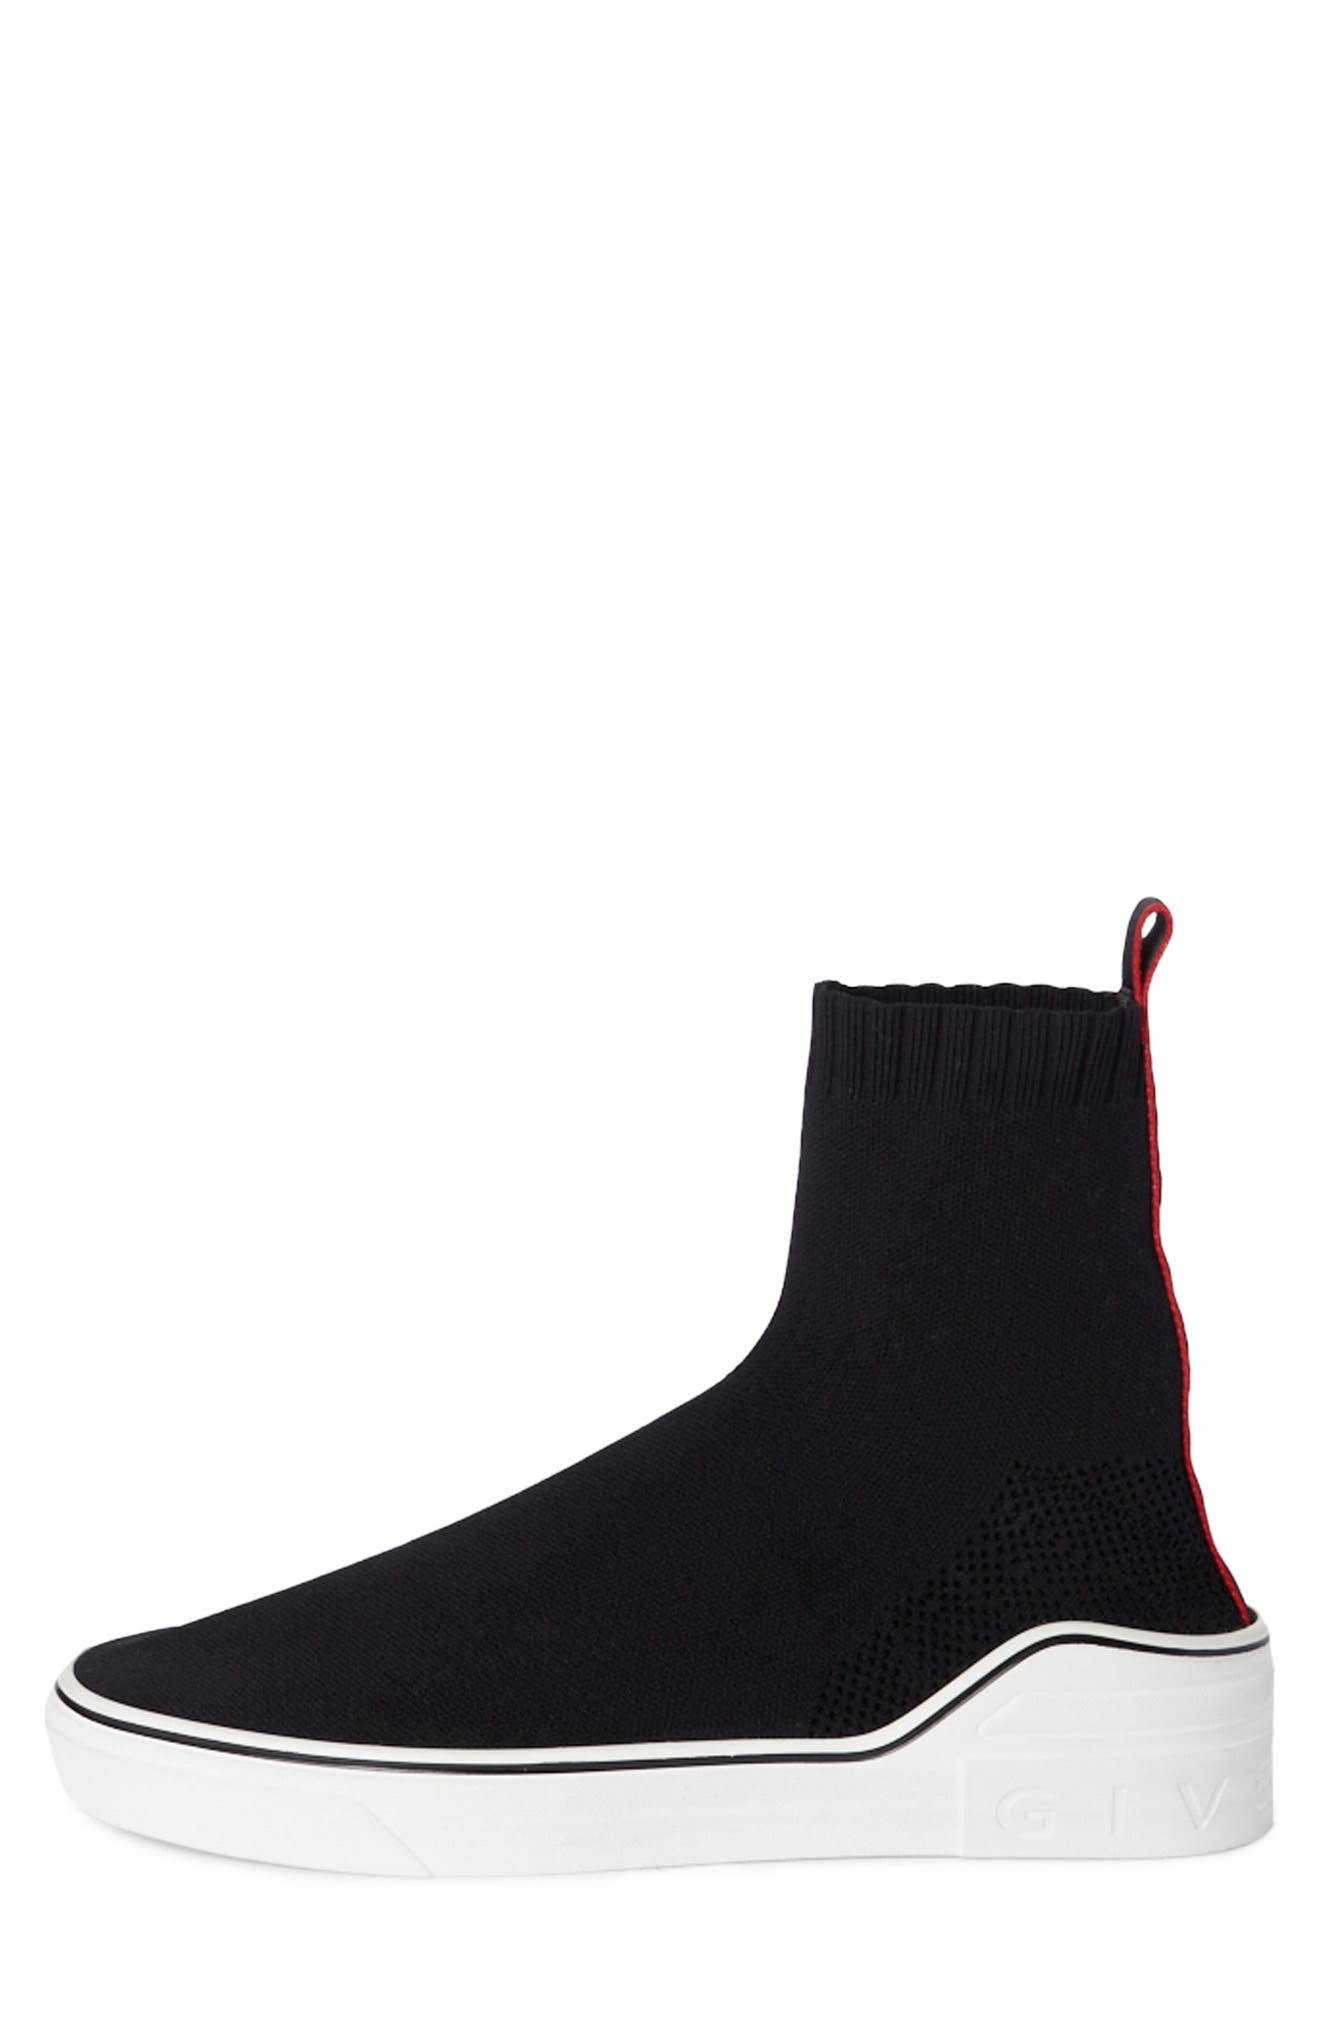 George V Slip-On,                             Alternate thumbnail 5, color,